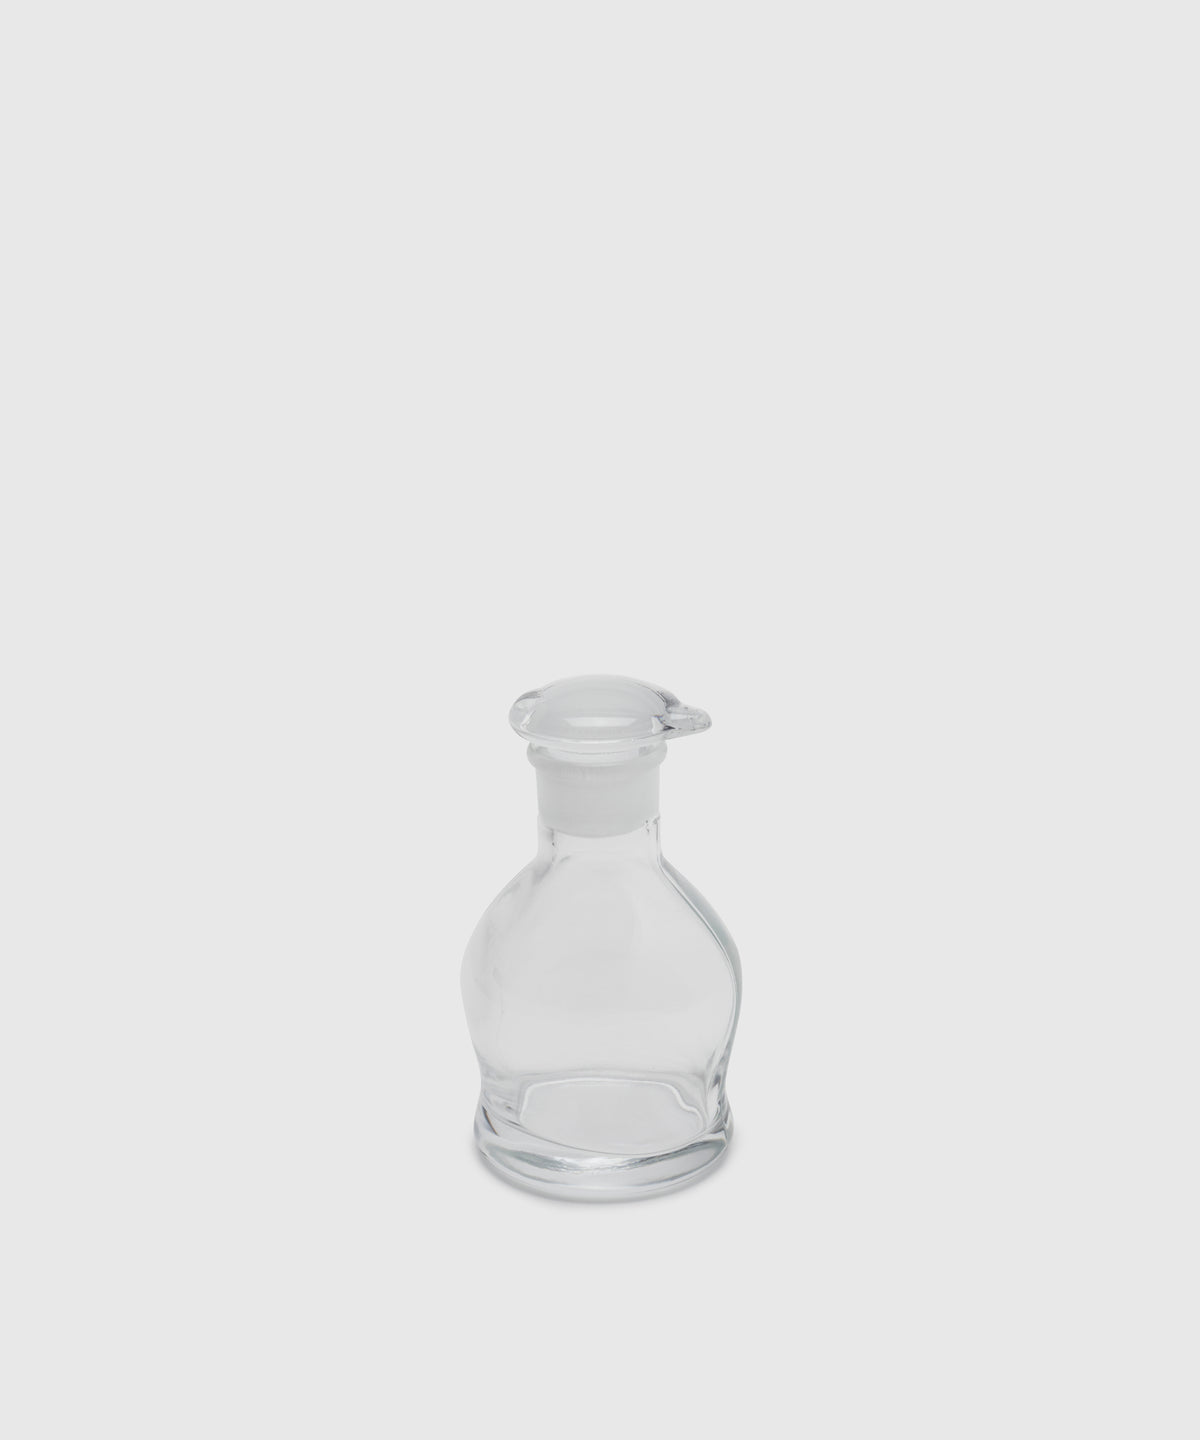 Japanese Glass Soy Sauce Cruet